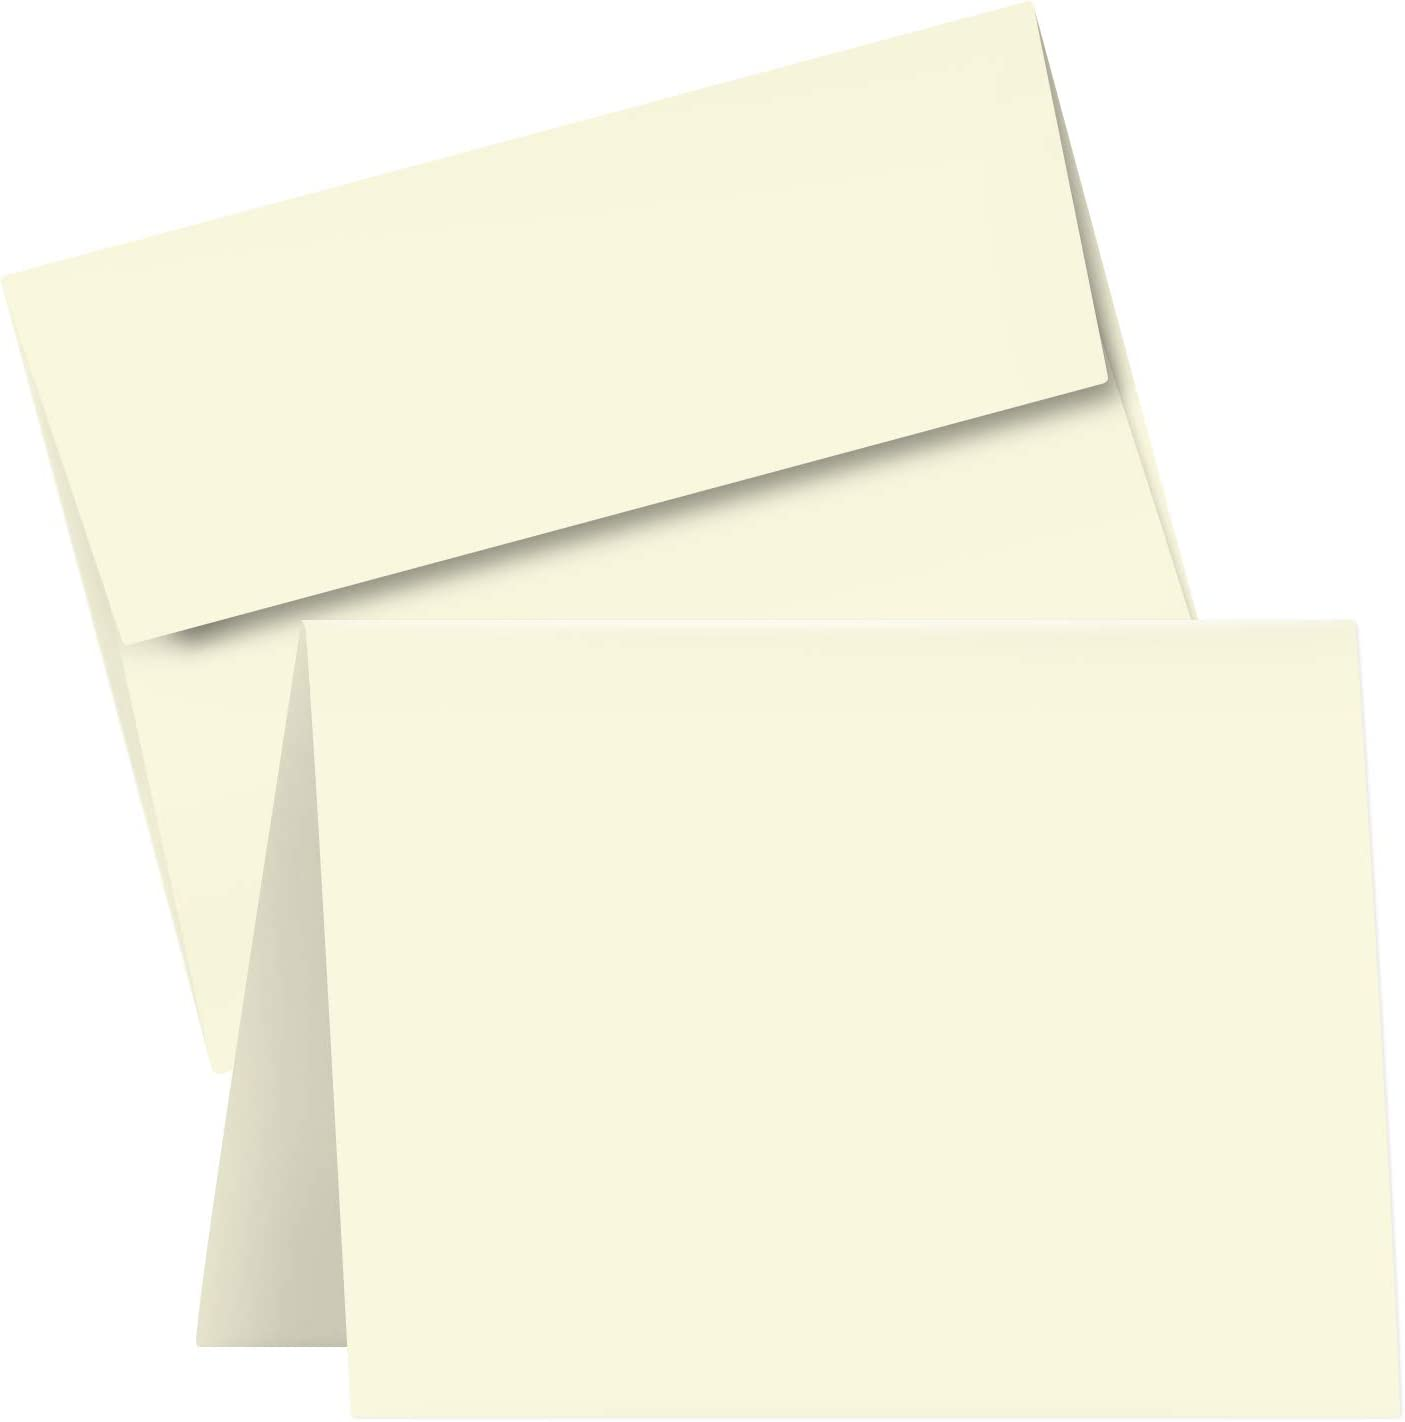 A6 Blank Cream Folding Greeting Cards | 4.5 x 6 Inches (When Folded) | Durable and Thick 80lb (216gsm) Card Stock | 50 Cards and Envelopes per Pack : Office Products